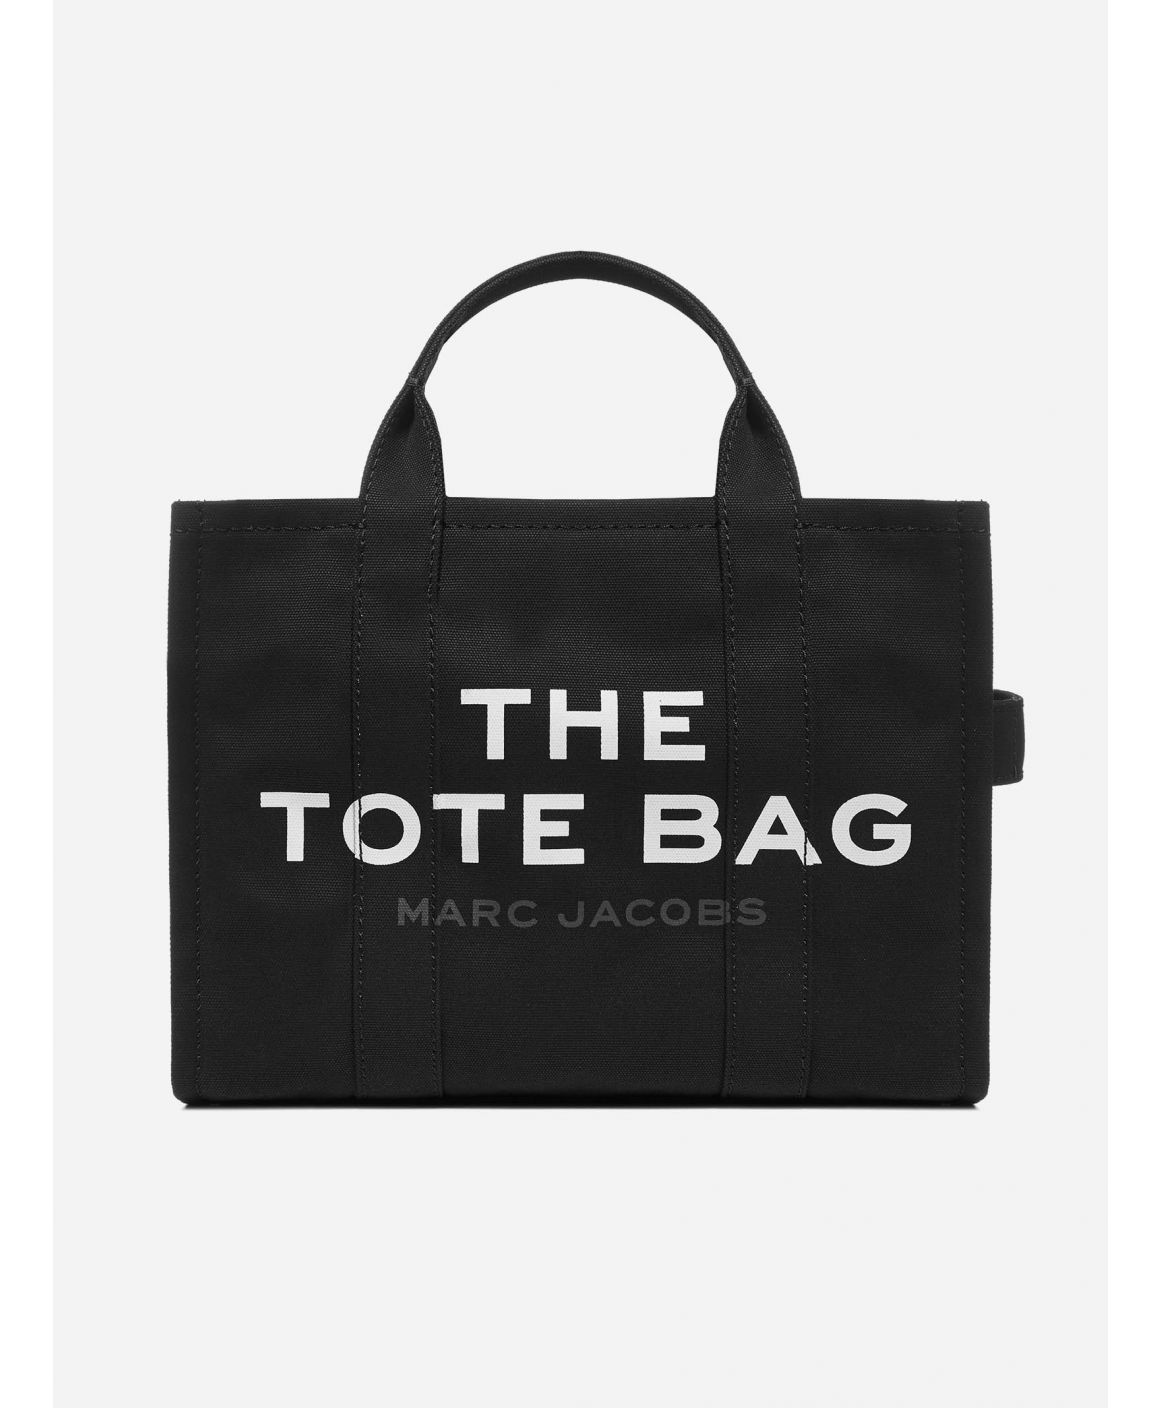 The Traveler Small canvas tote bag